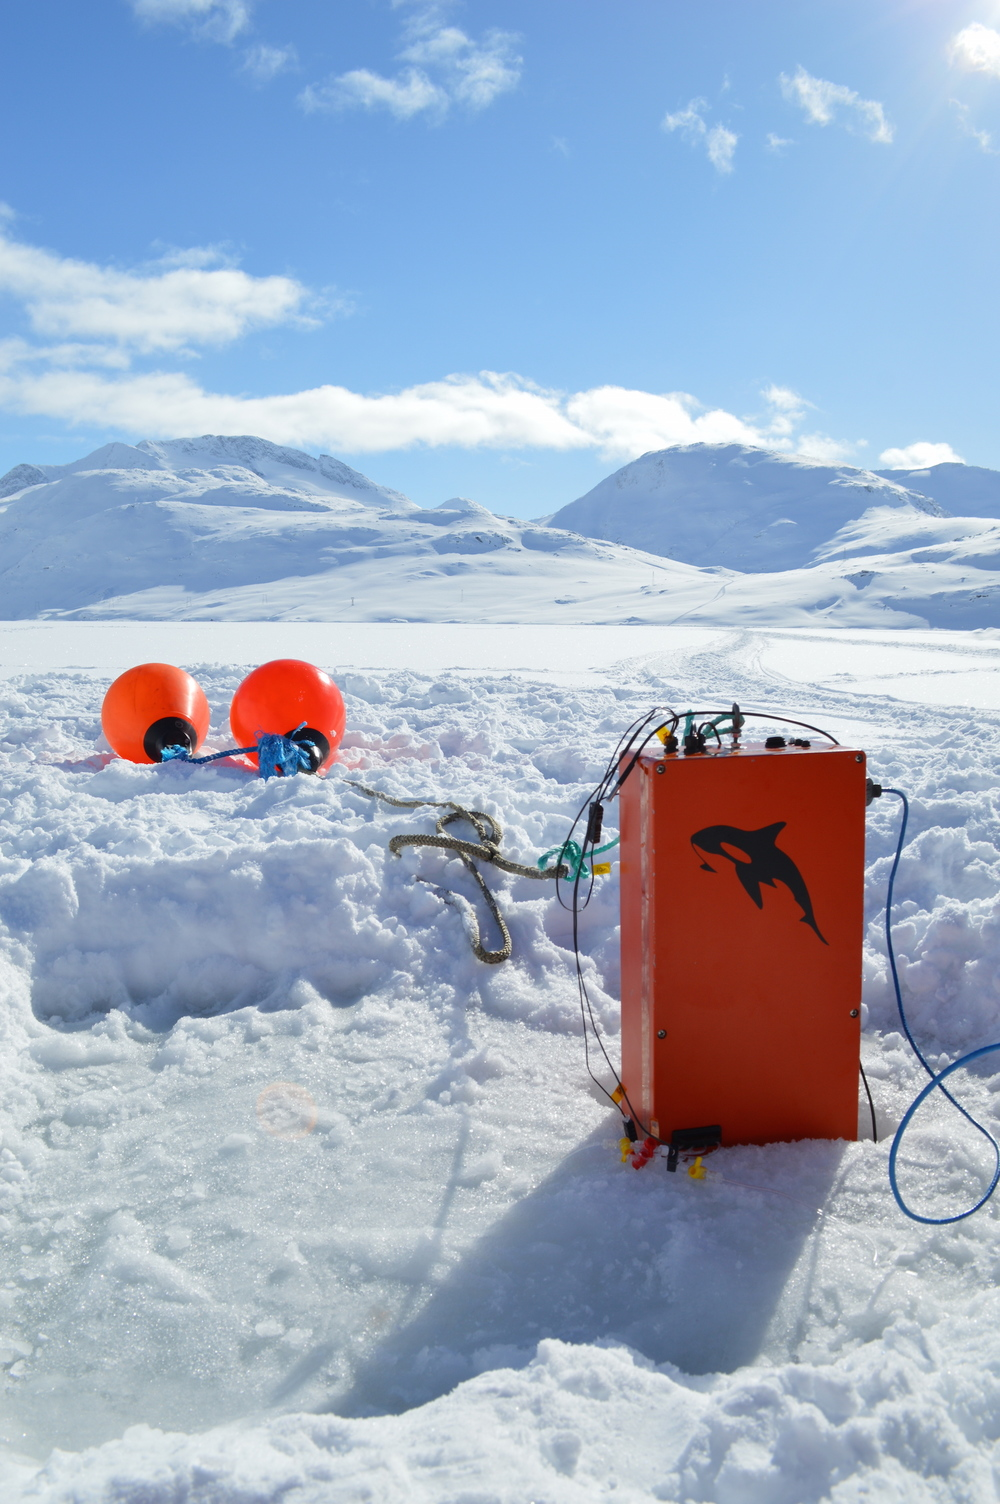 Motility testing in Greenland.